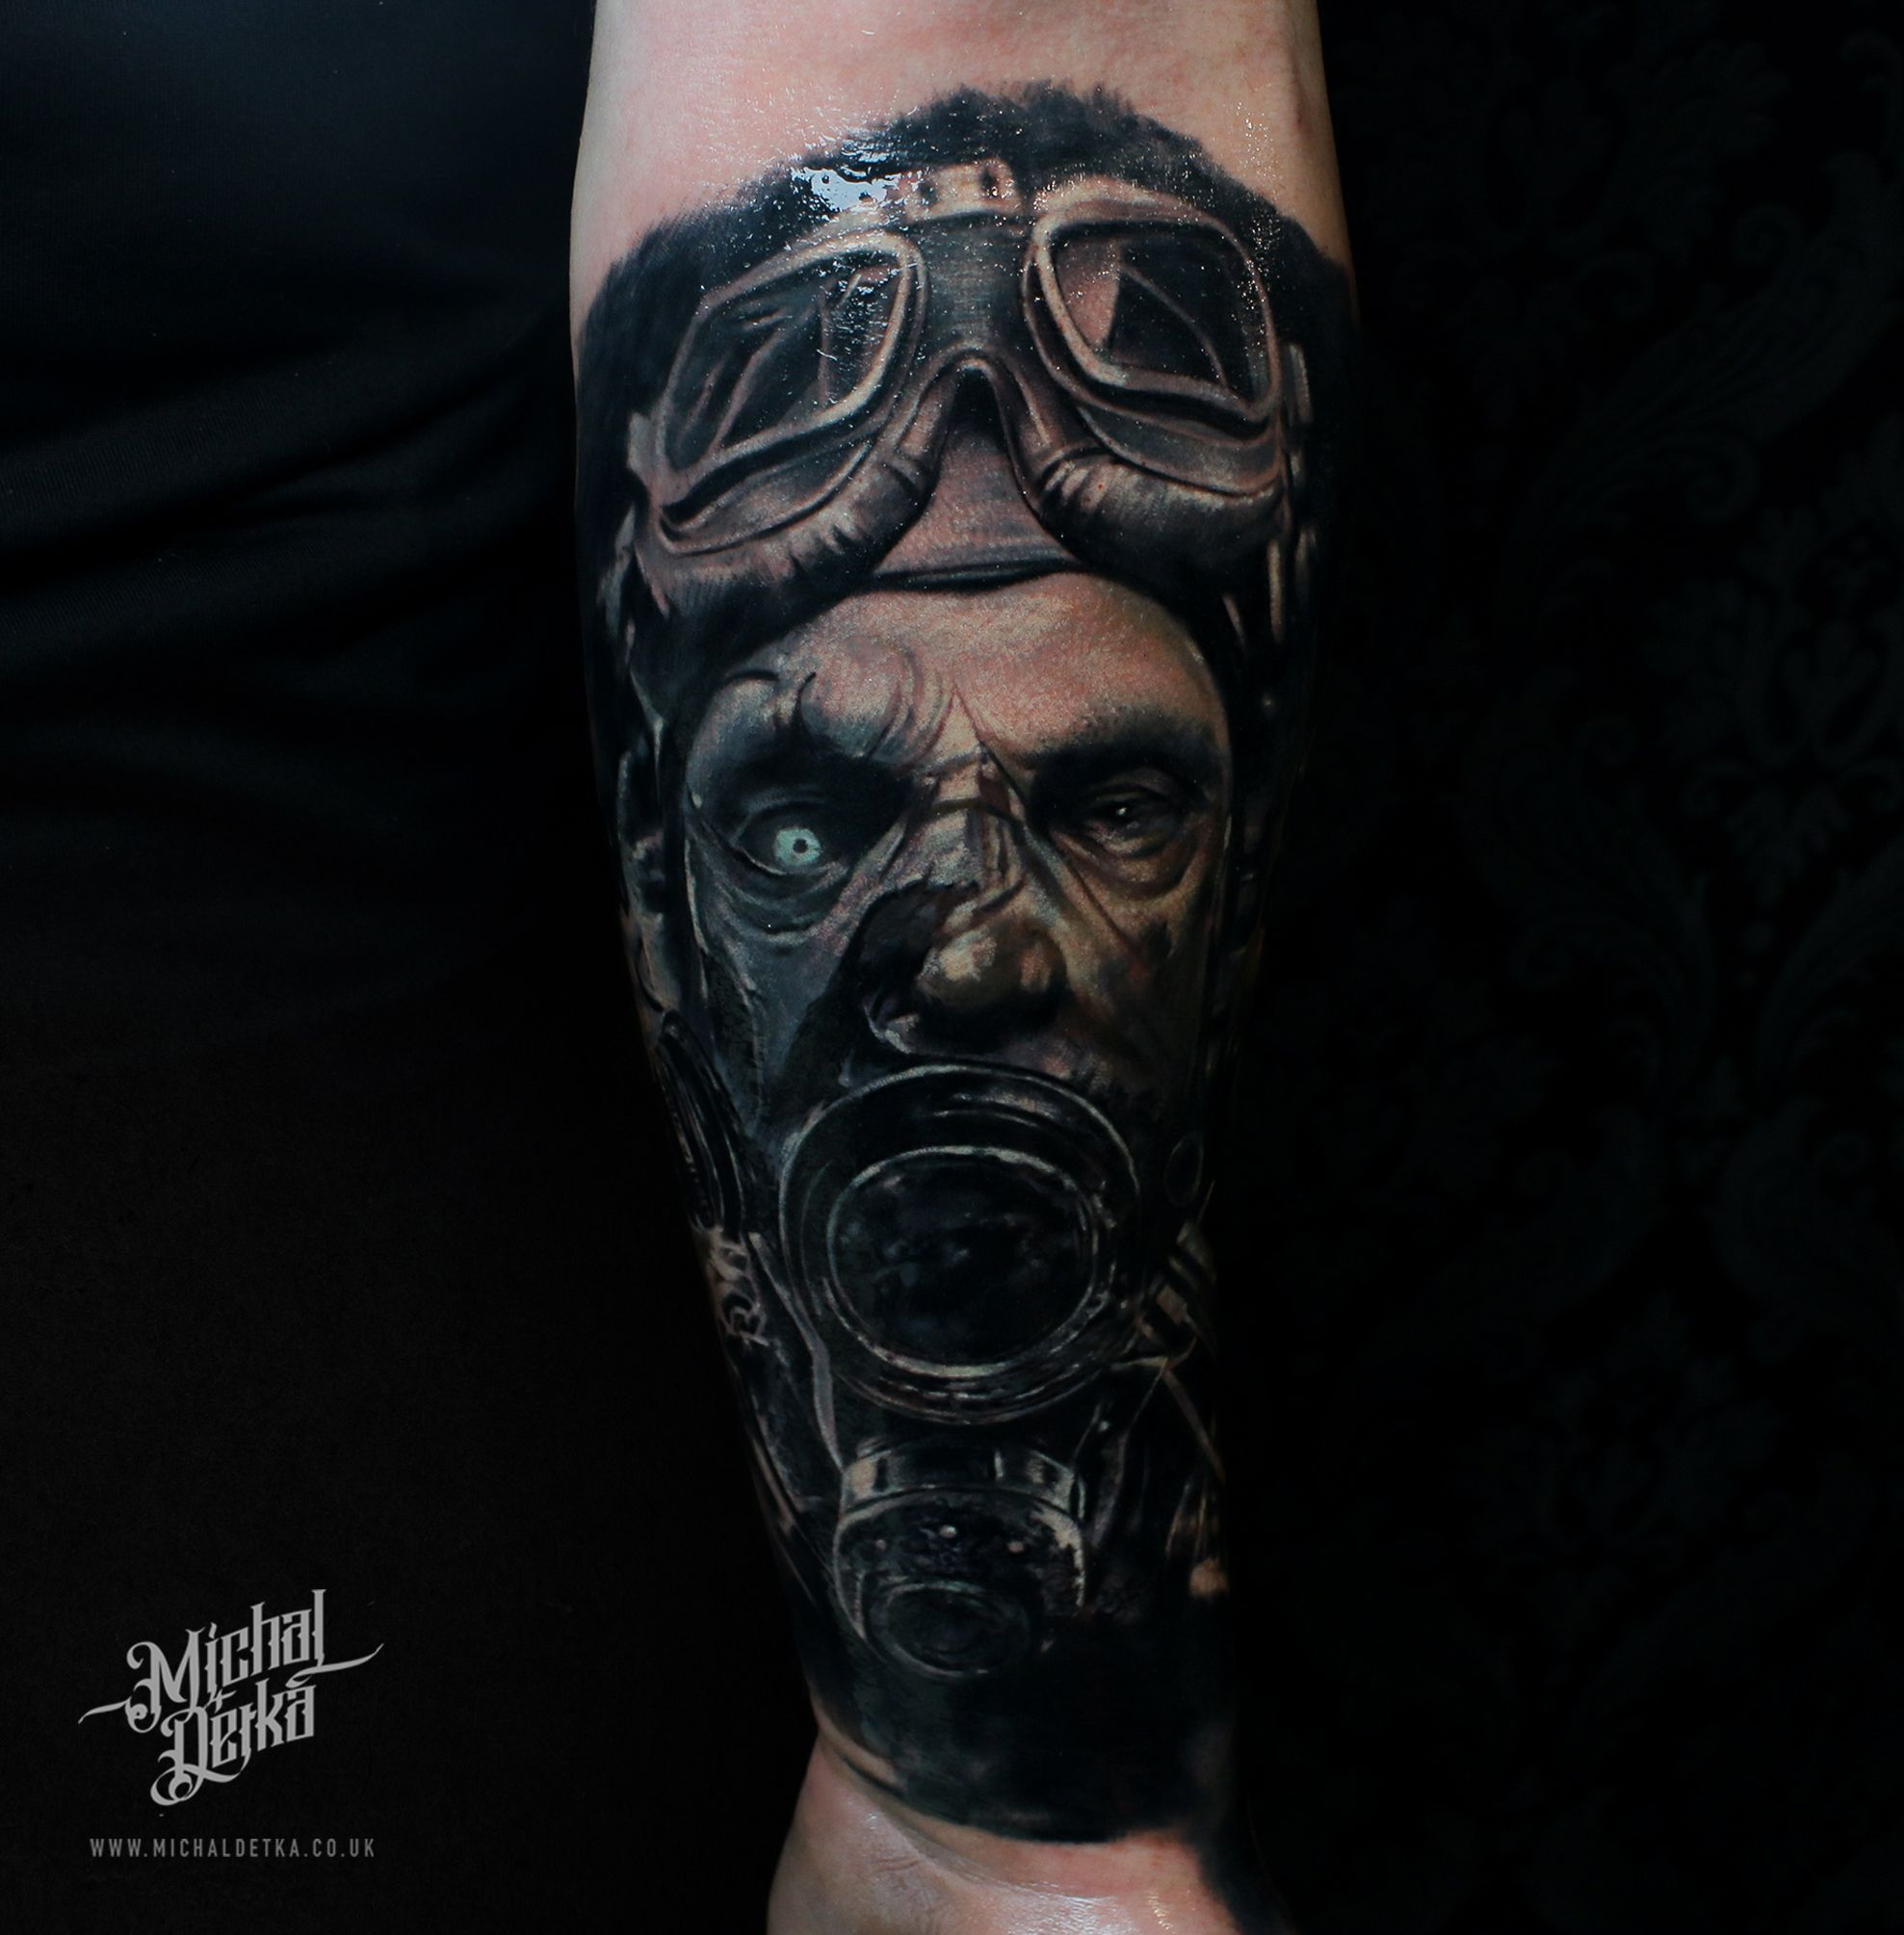 Tattoo Ideas Uk: Gas Mask Tattoo Post Apocalyptic Tattoo Designs For Men By